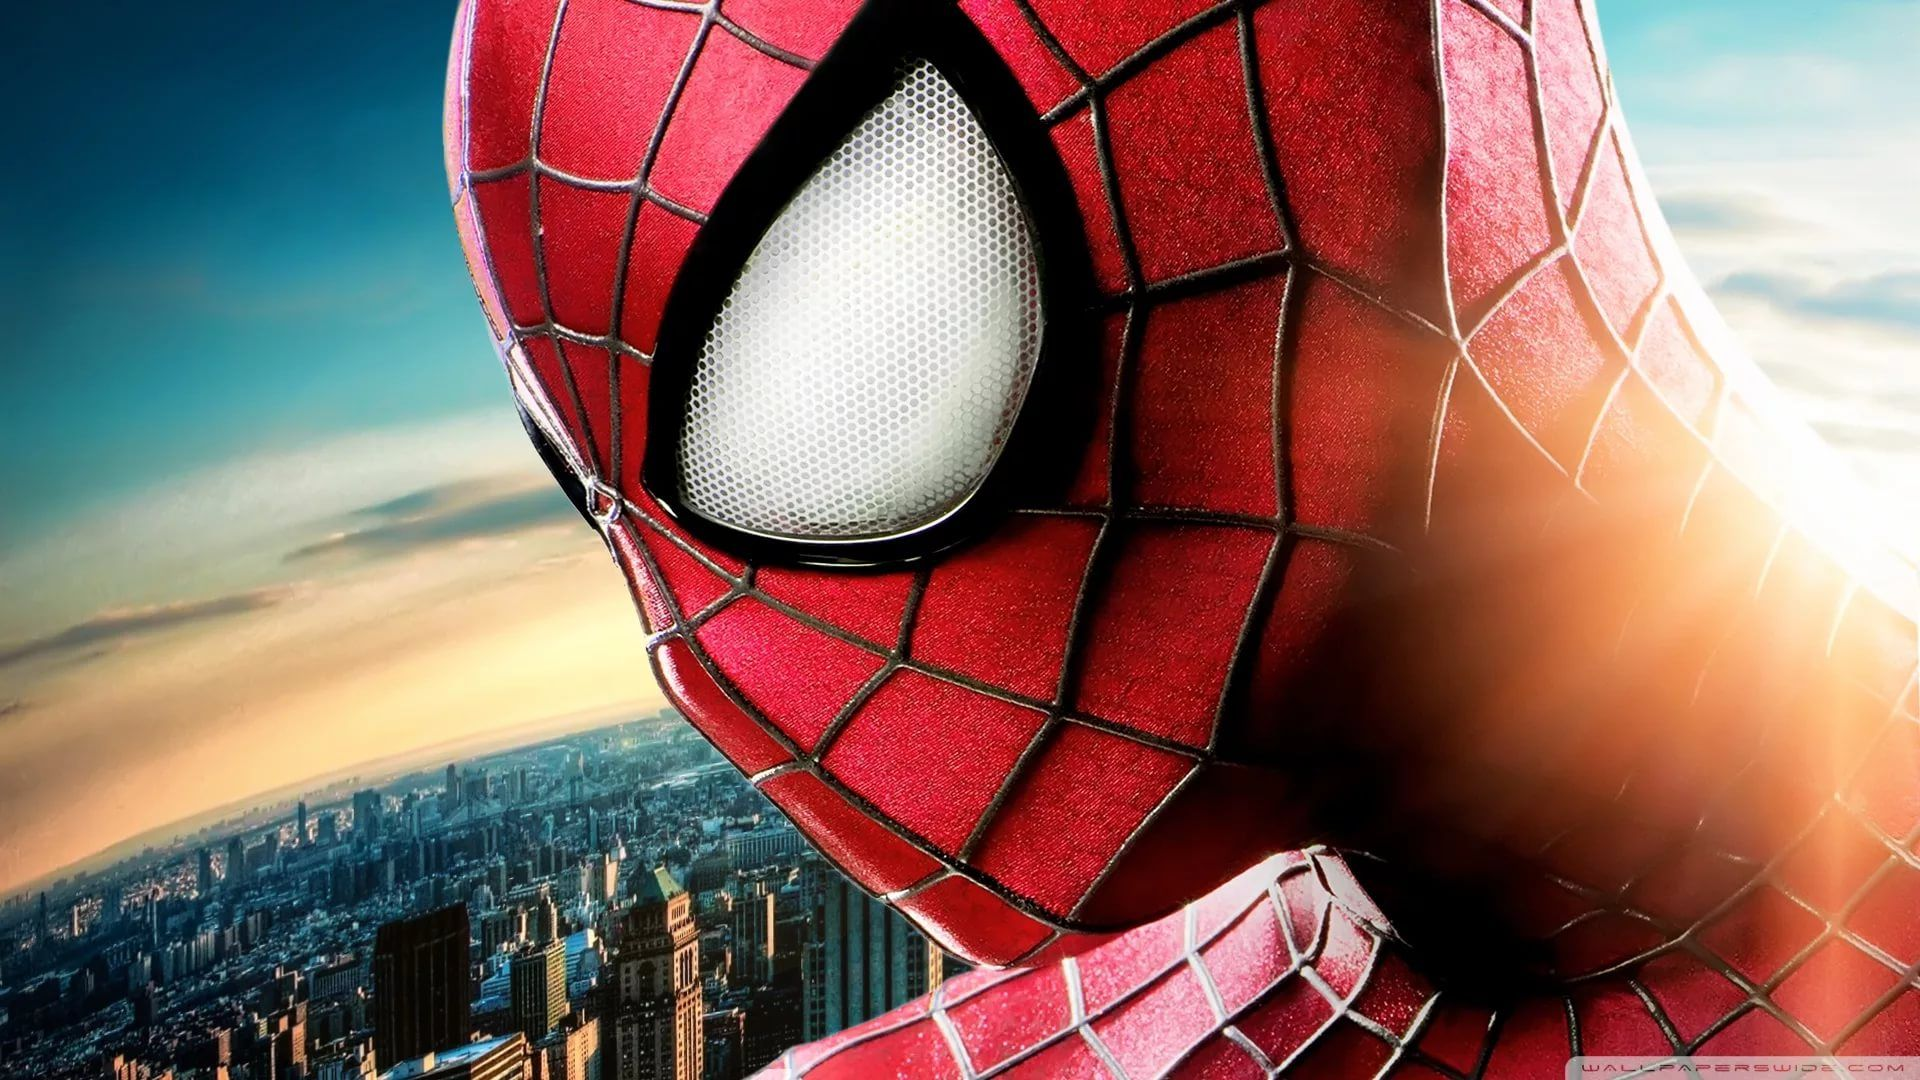 Spiderman Cool Wallpaper